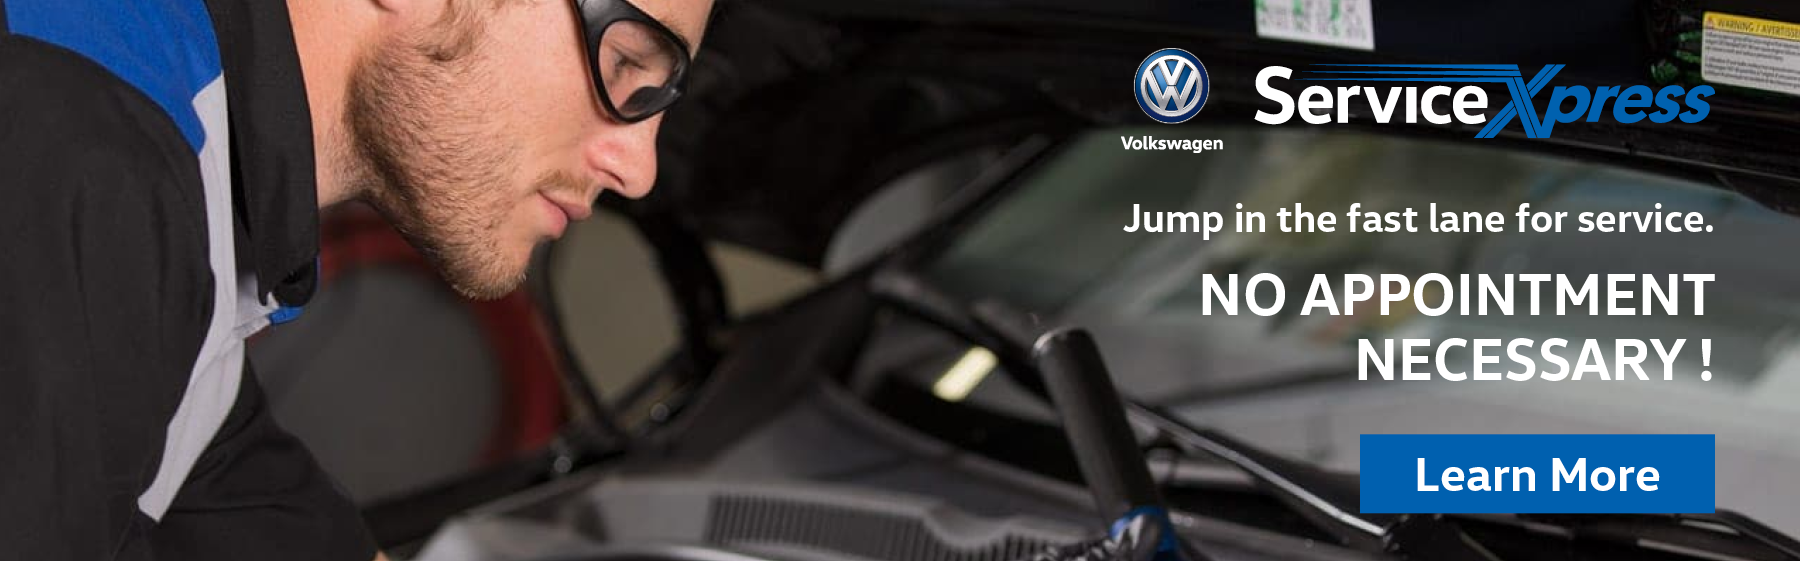 Gunther Volkswagen | Volkswagen Dealer in Fort Lauderdale, FL